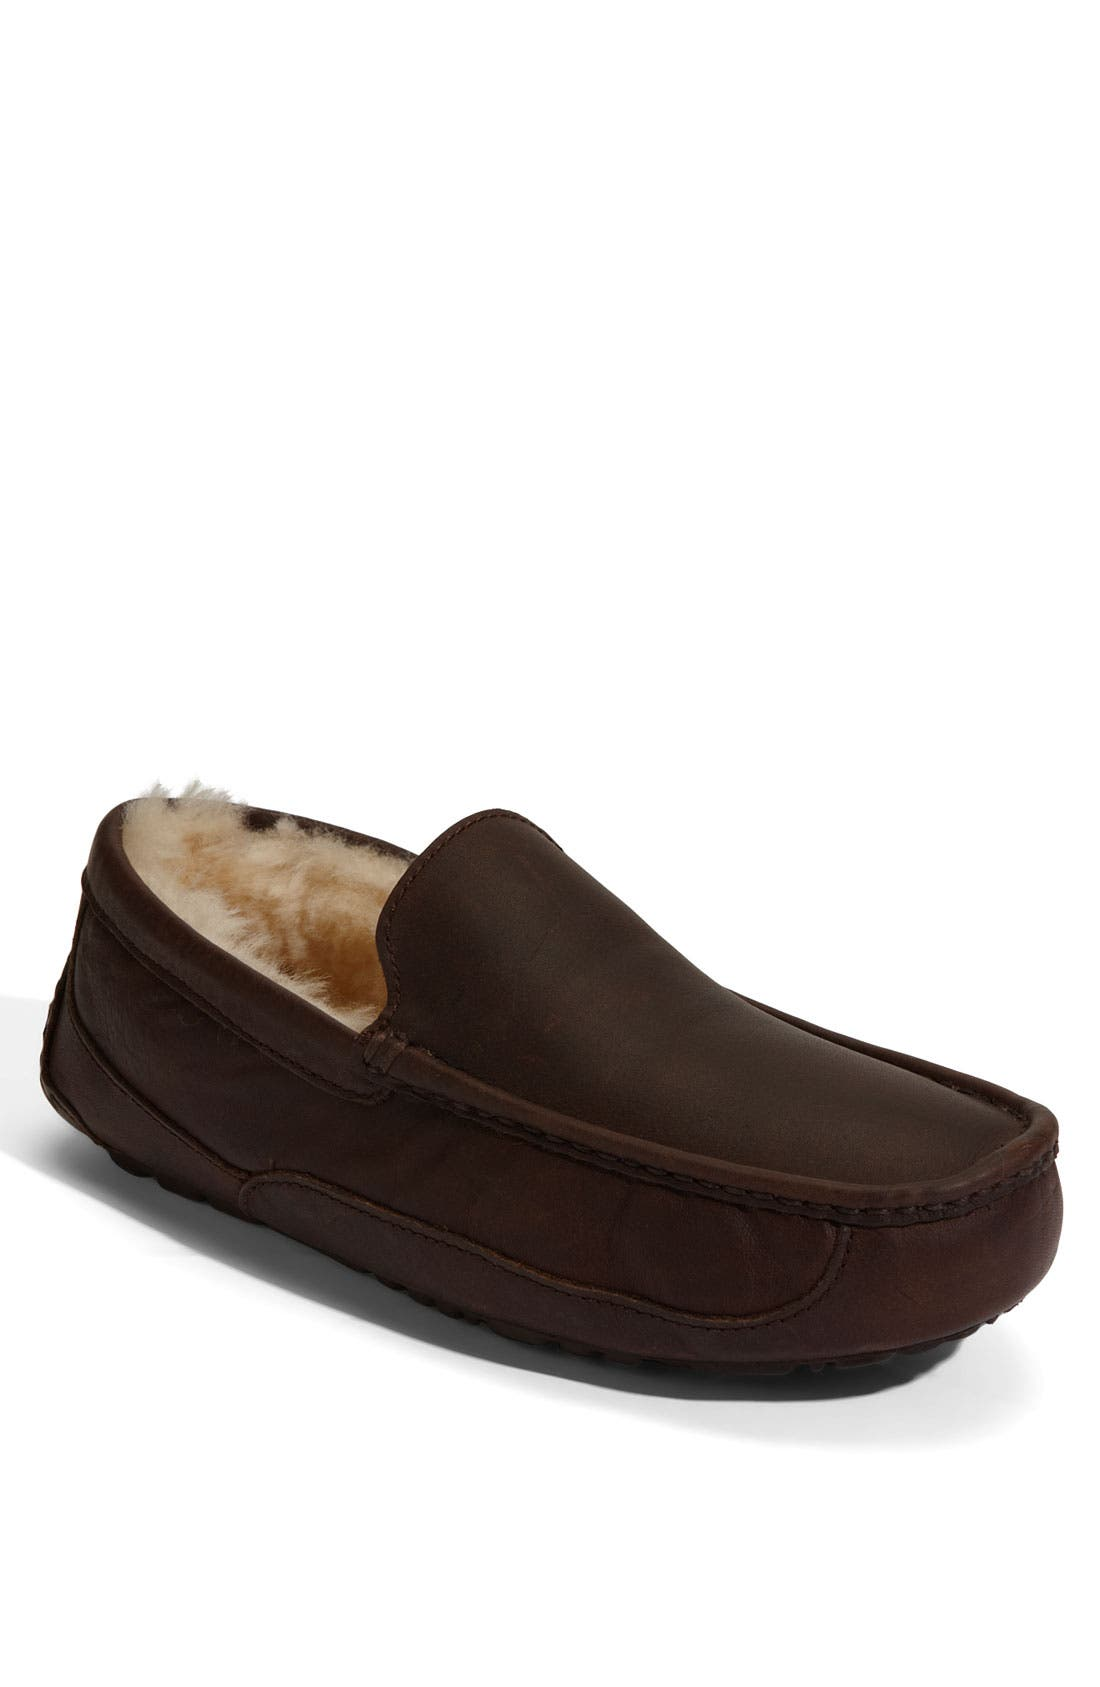 Ugg Ascot Leather Slipper, 8- Brown